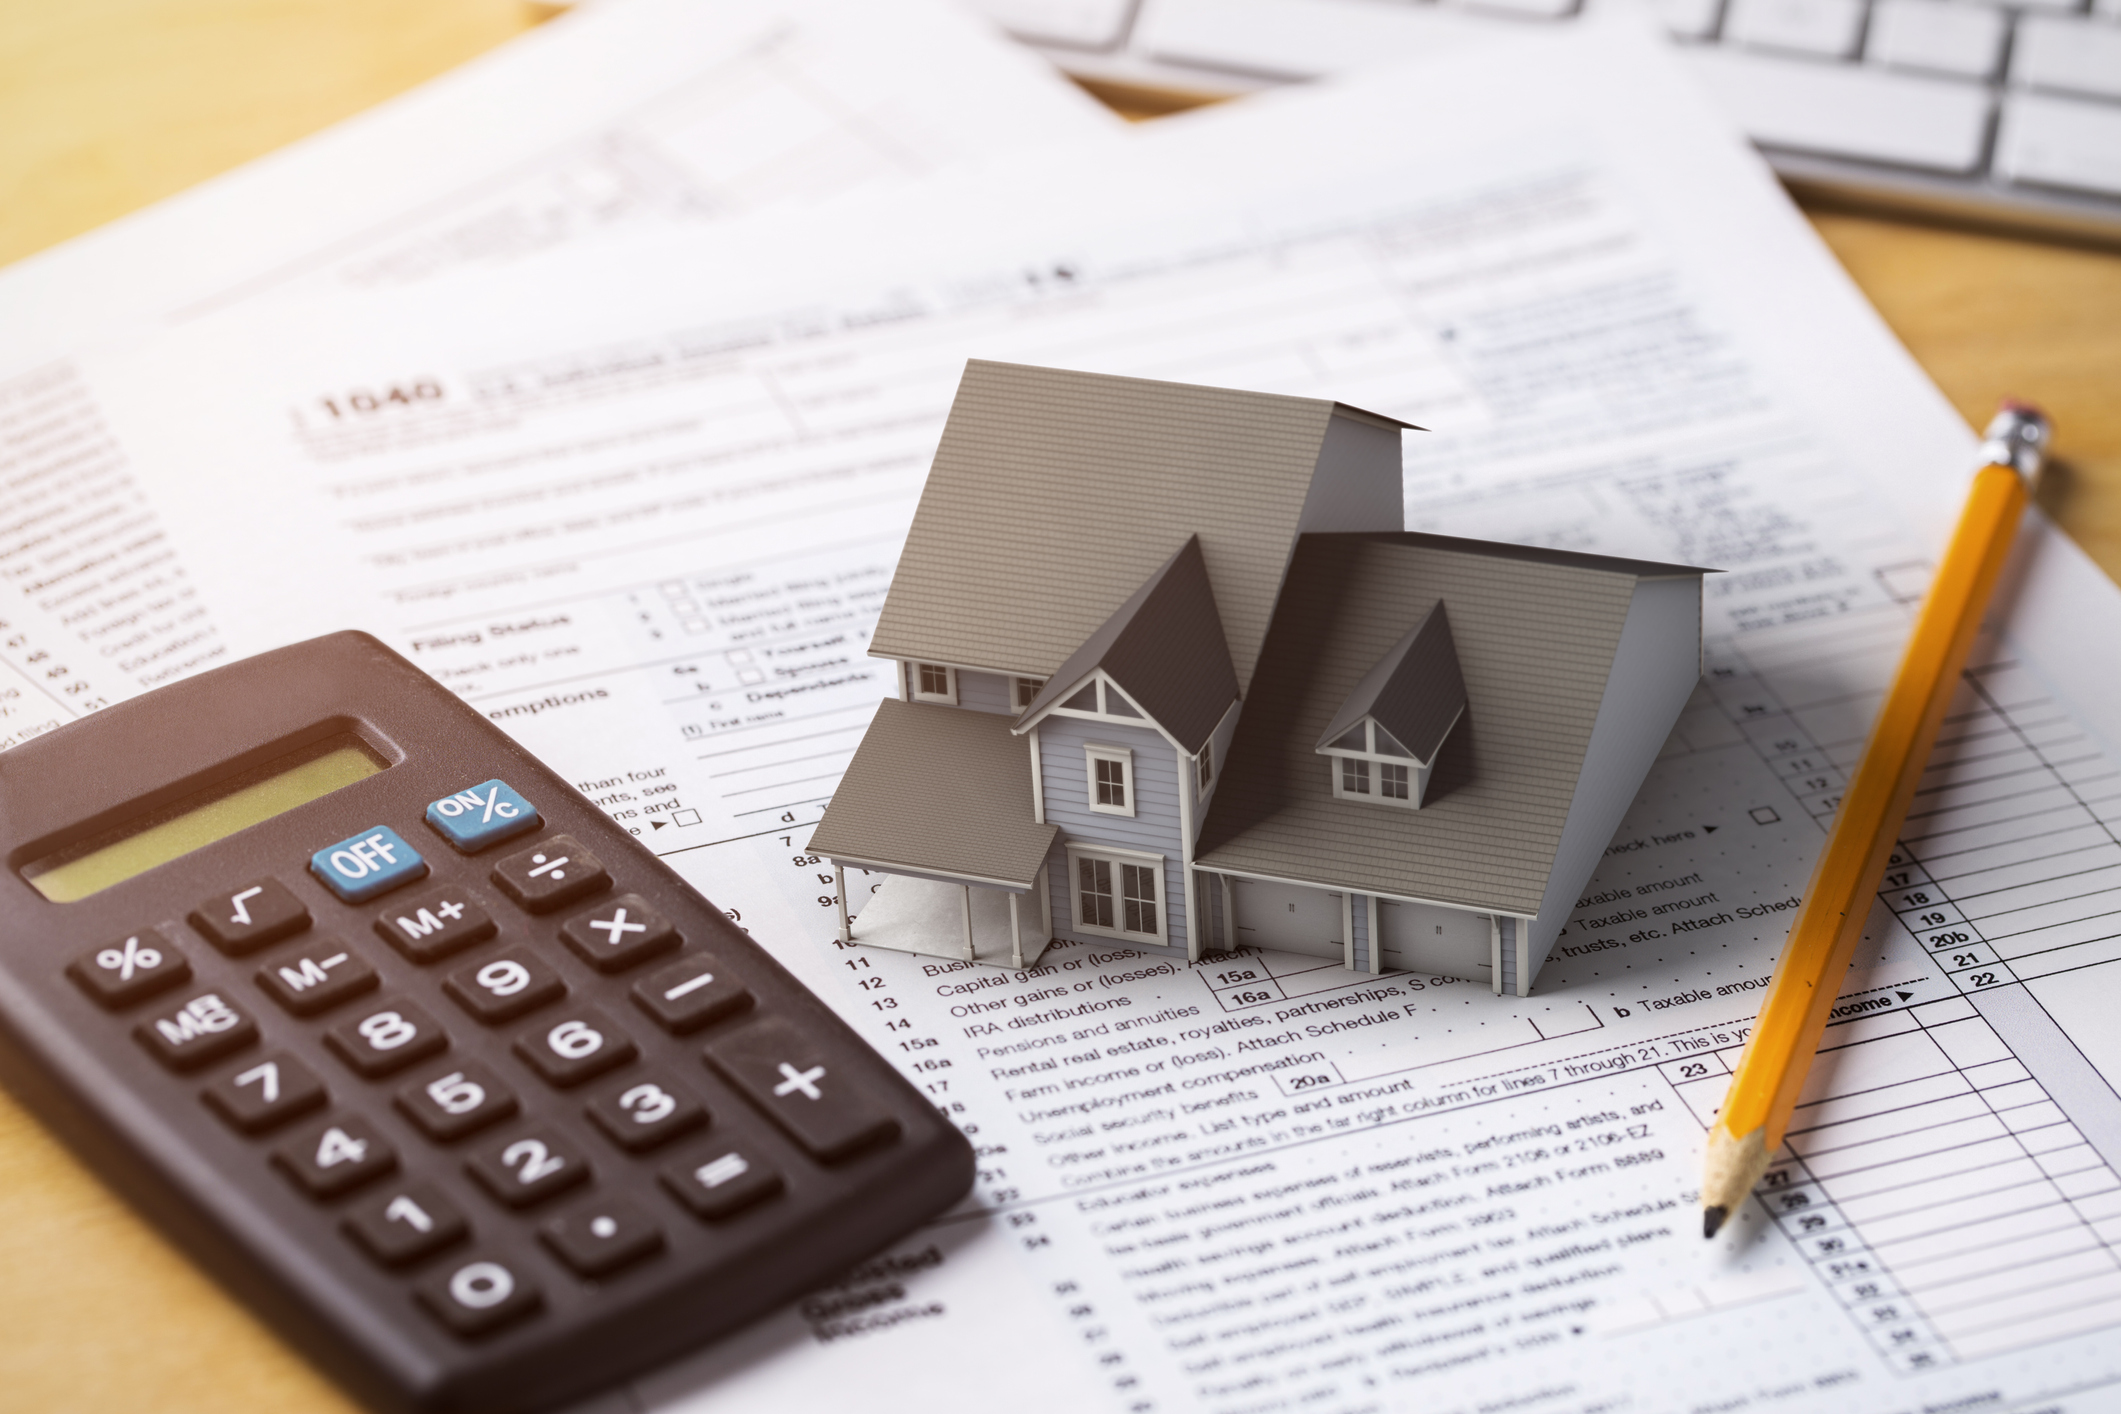 Miniature house on top of loan documents